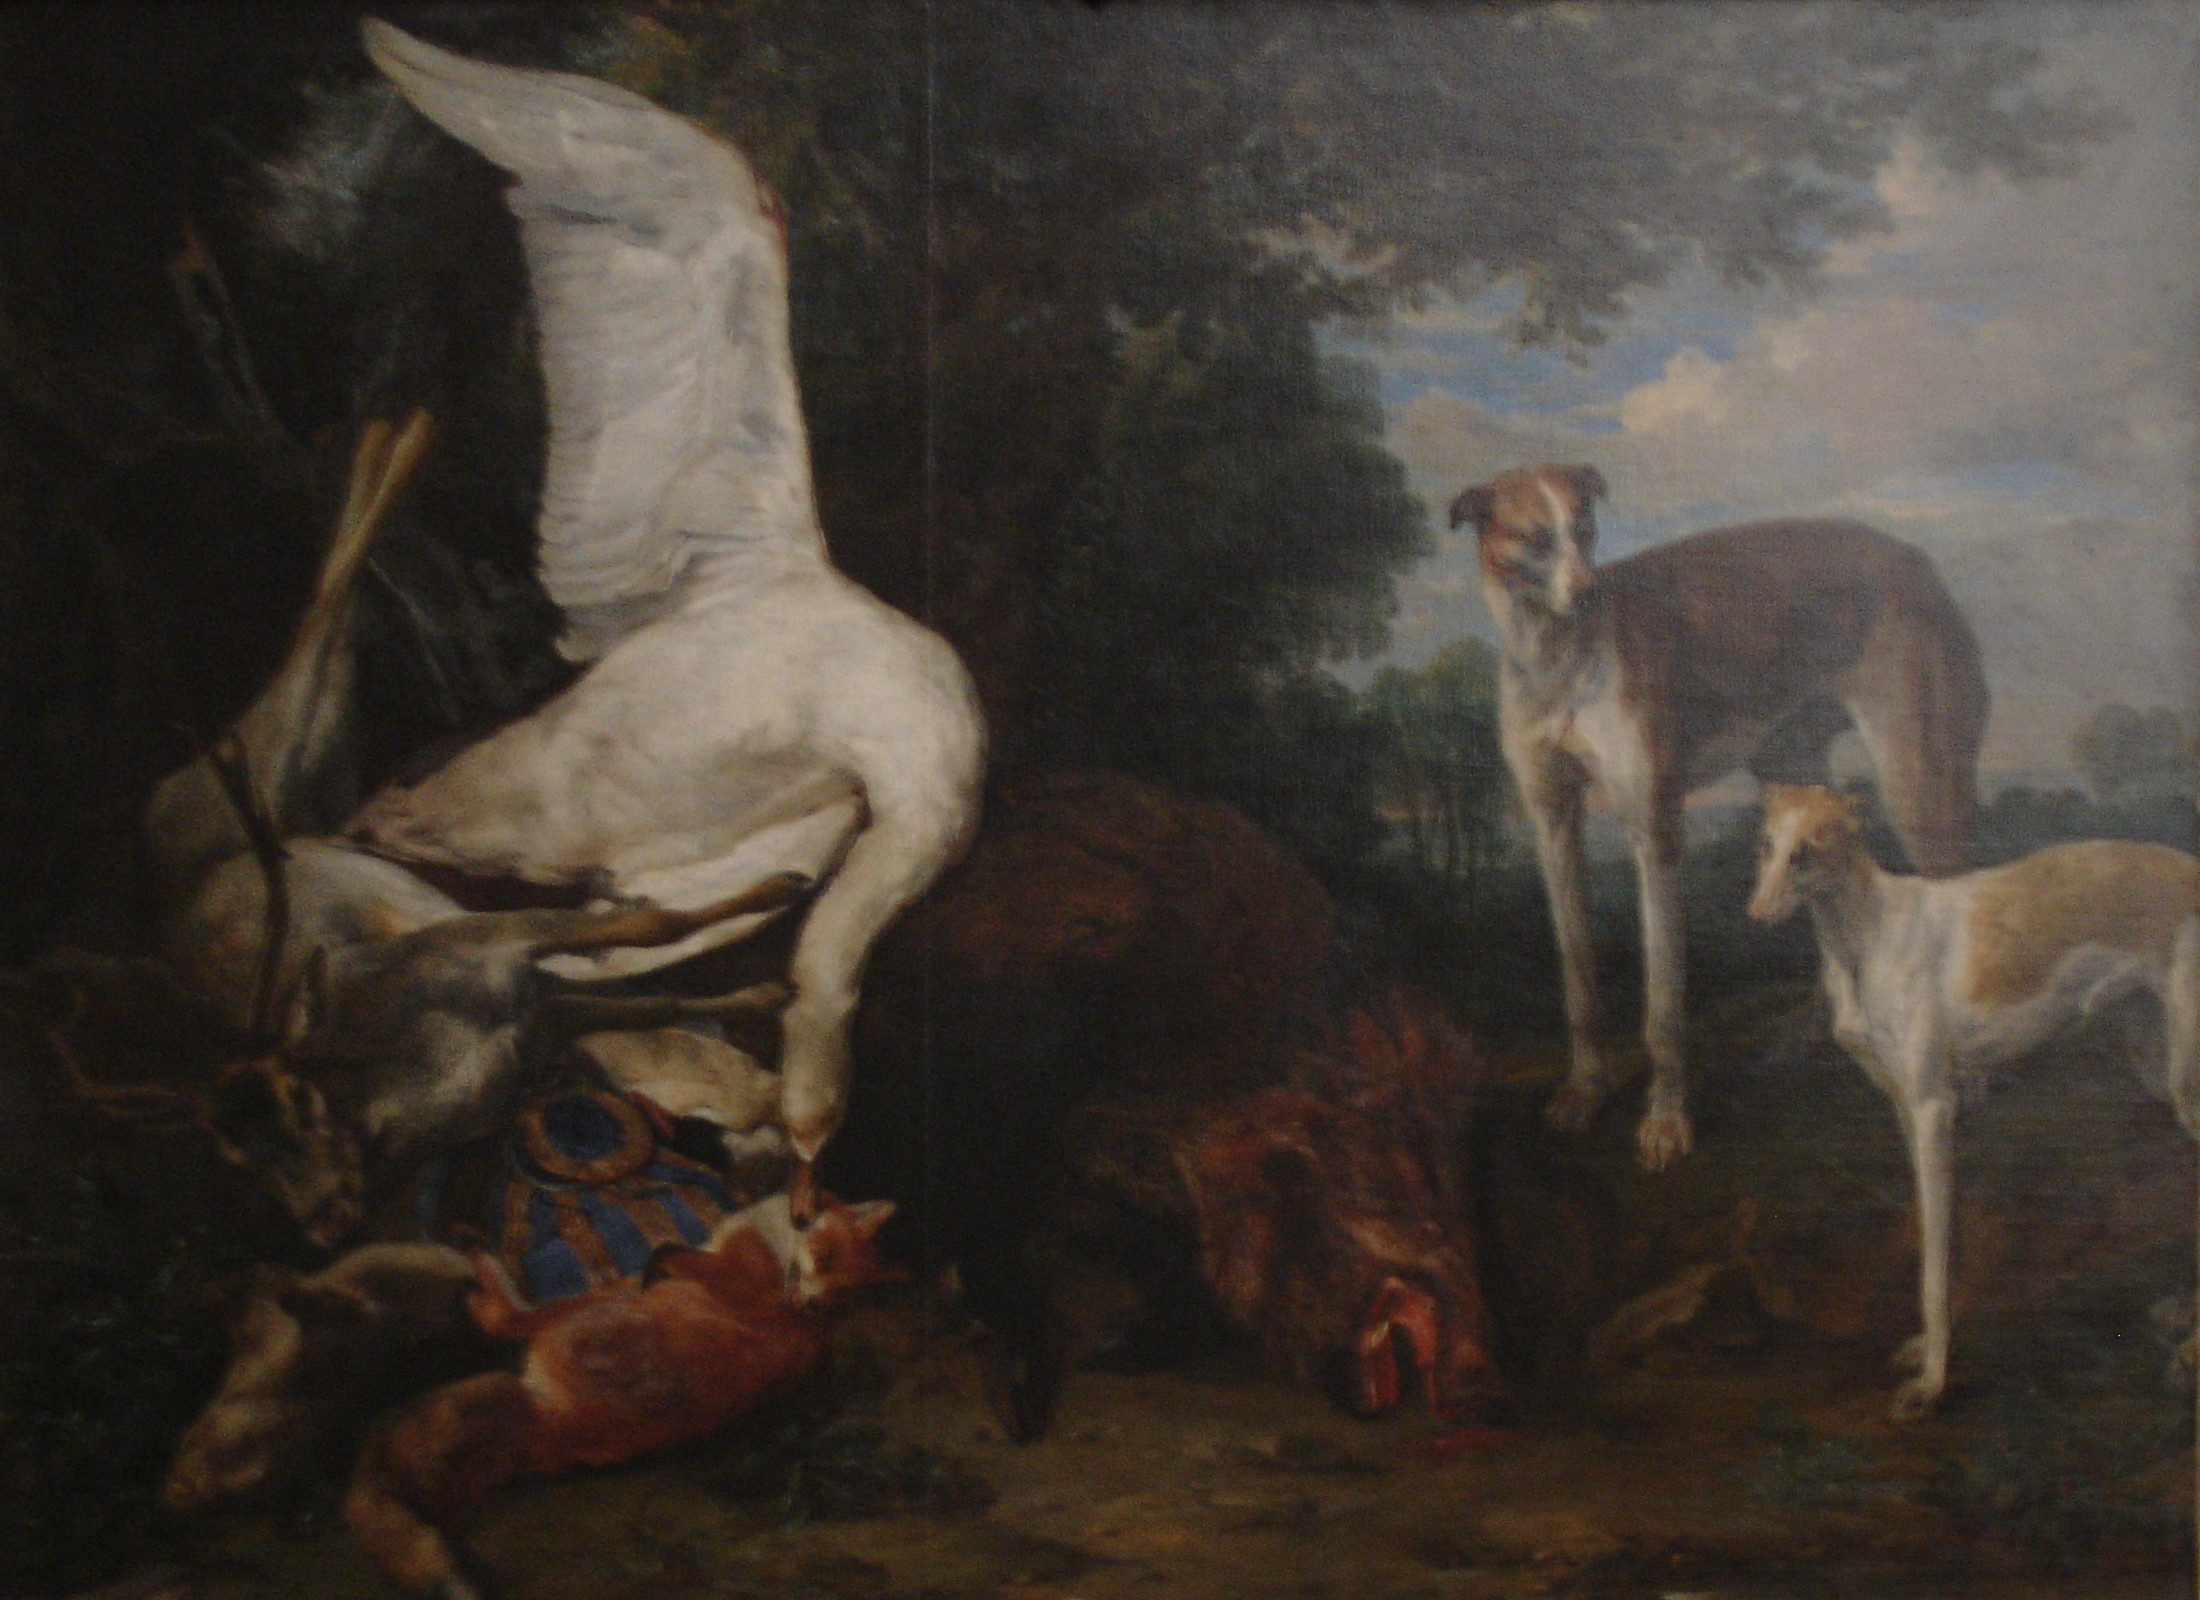 File:Pieter Boel, Dead Game Guarded by Two Dogs JPG - Wikimedia Commons